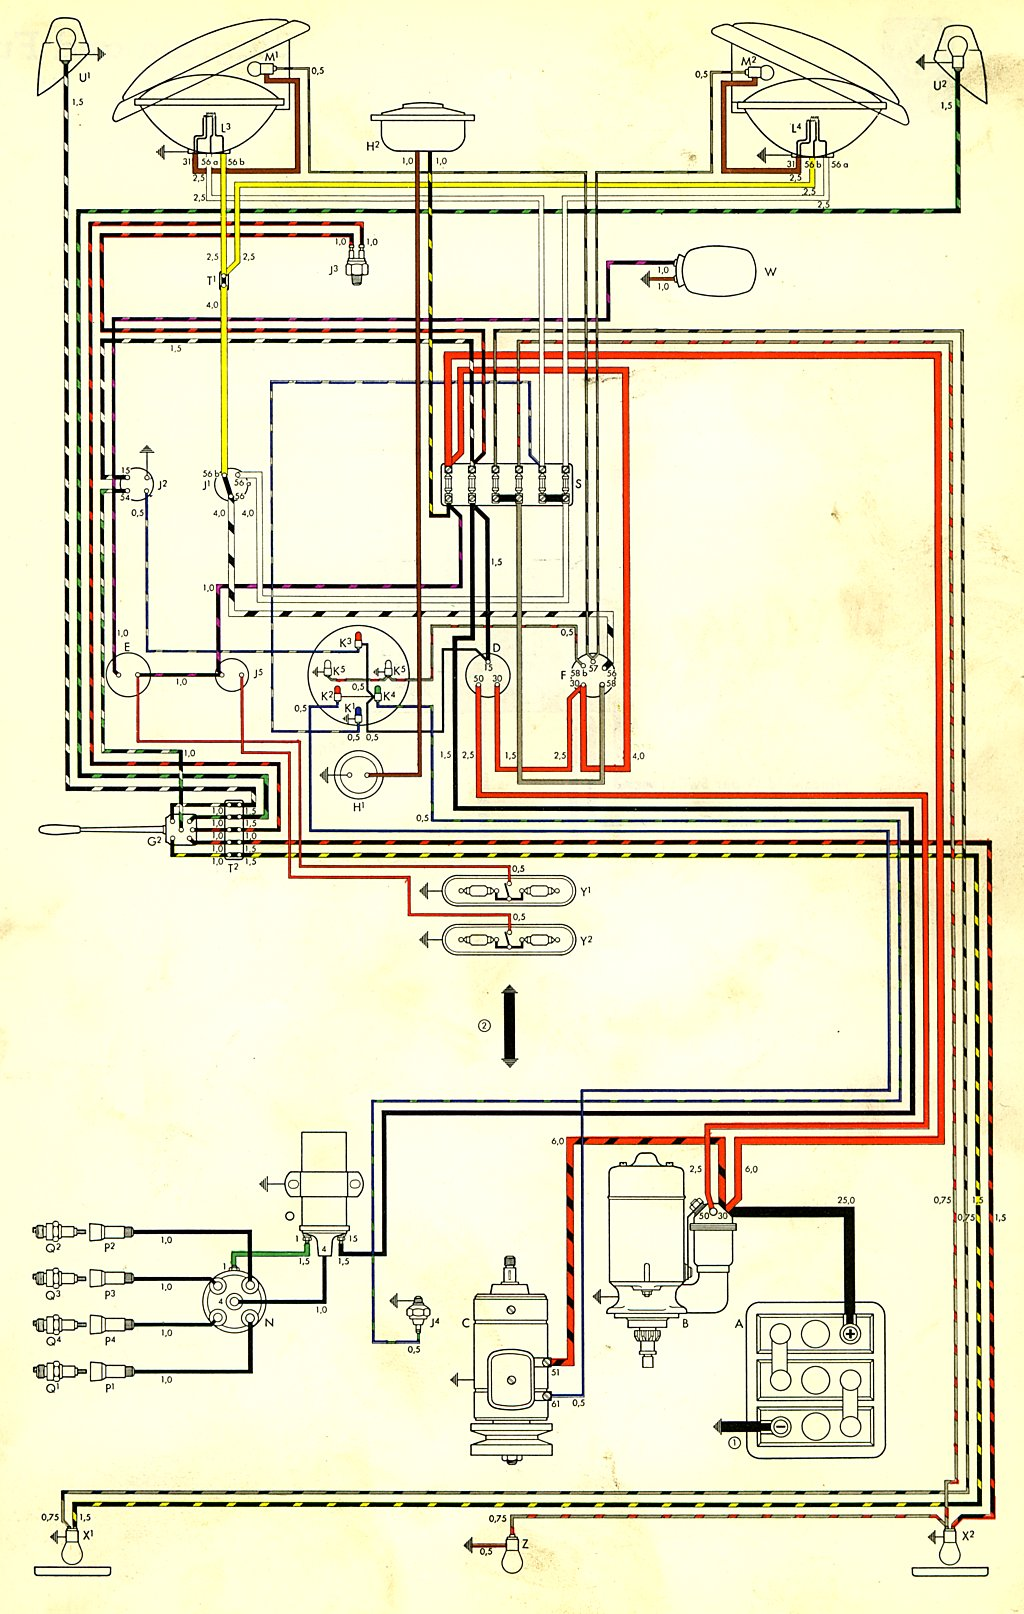 bus_59_USA vw bus wiring diagram wiring diagrams schematics